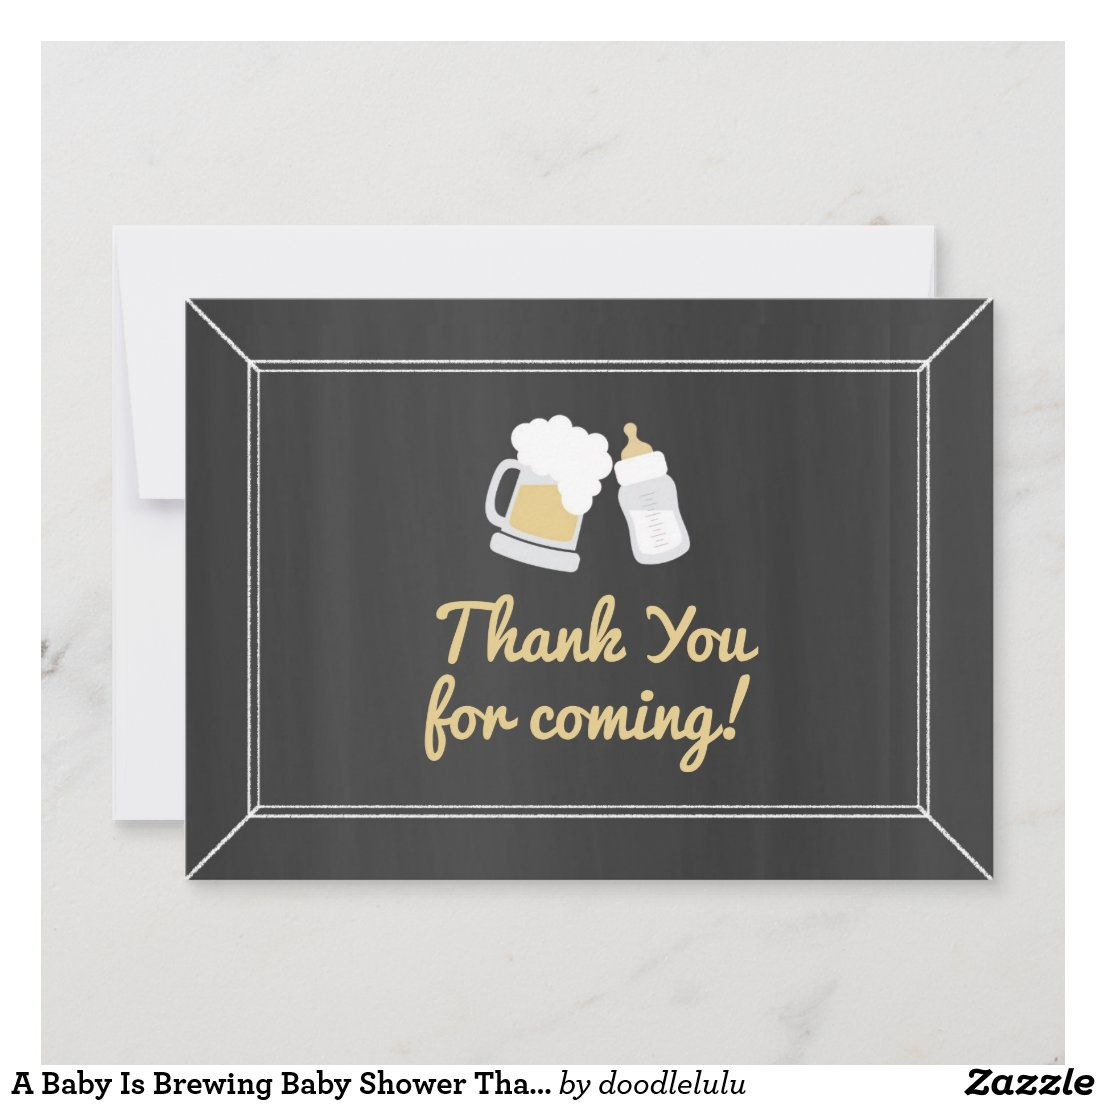 A Baby Is Brewing Baby Shower Thank You